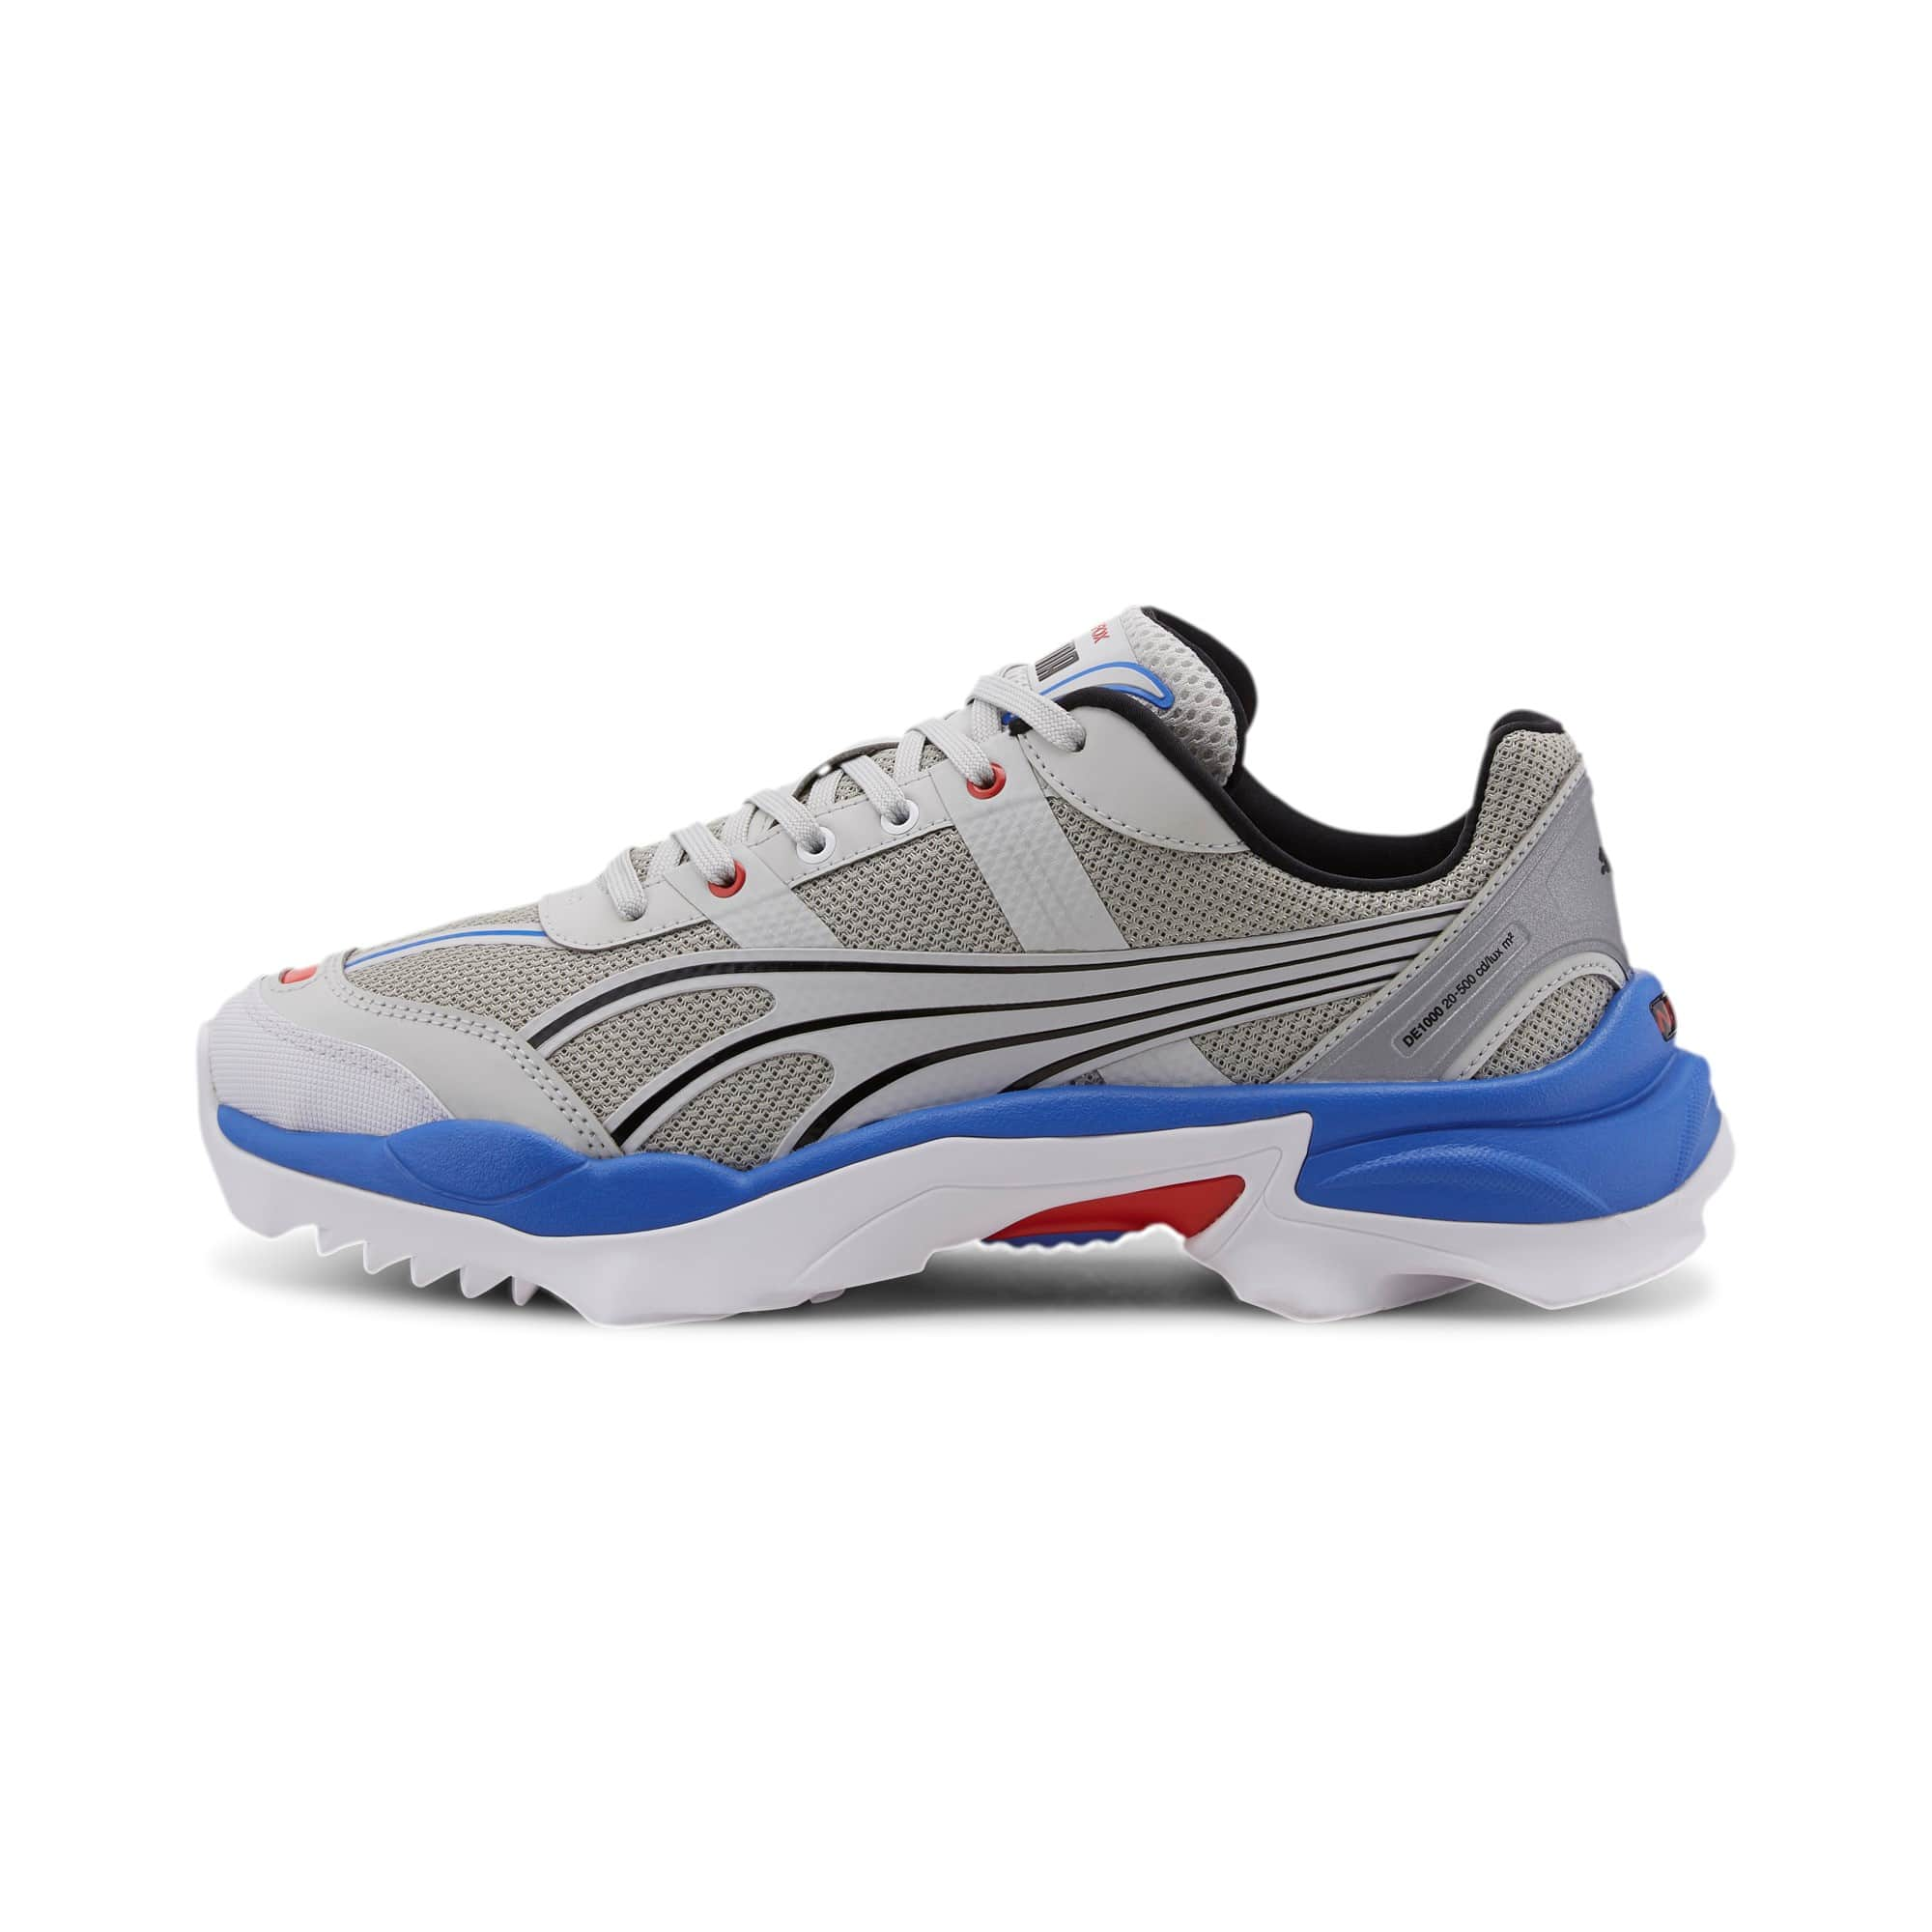 PUMA SNEAKERS NITEFOX HIGHWAY RUNNING TRAINERS SCARPA UOMO DONNA MULTICOLOR GRIGIO BLU ROSSA GREY RED BLU ELECTRIC 371480 01 TAGLIA SIZE 40 41 42 43 44 45